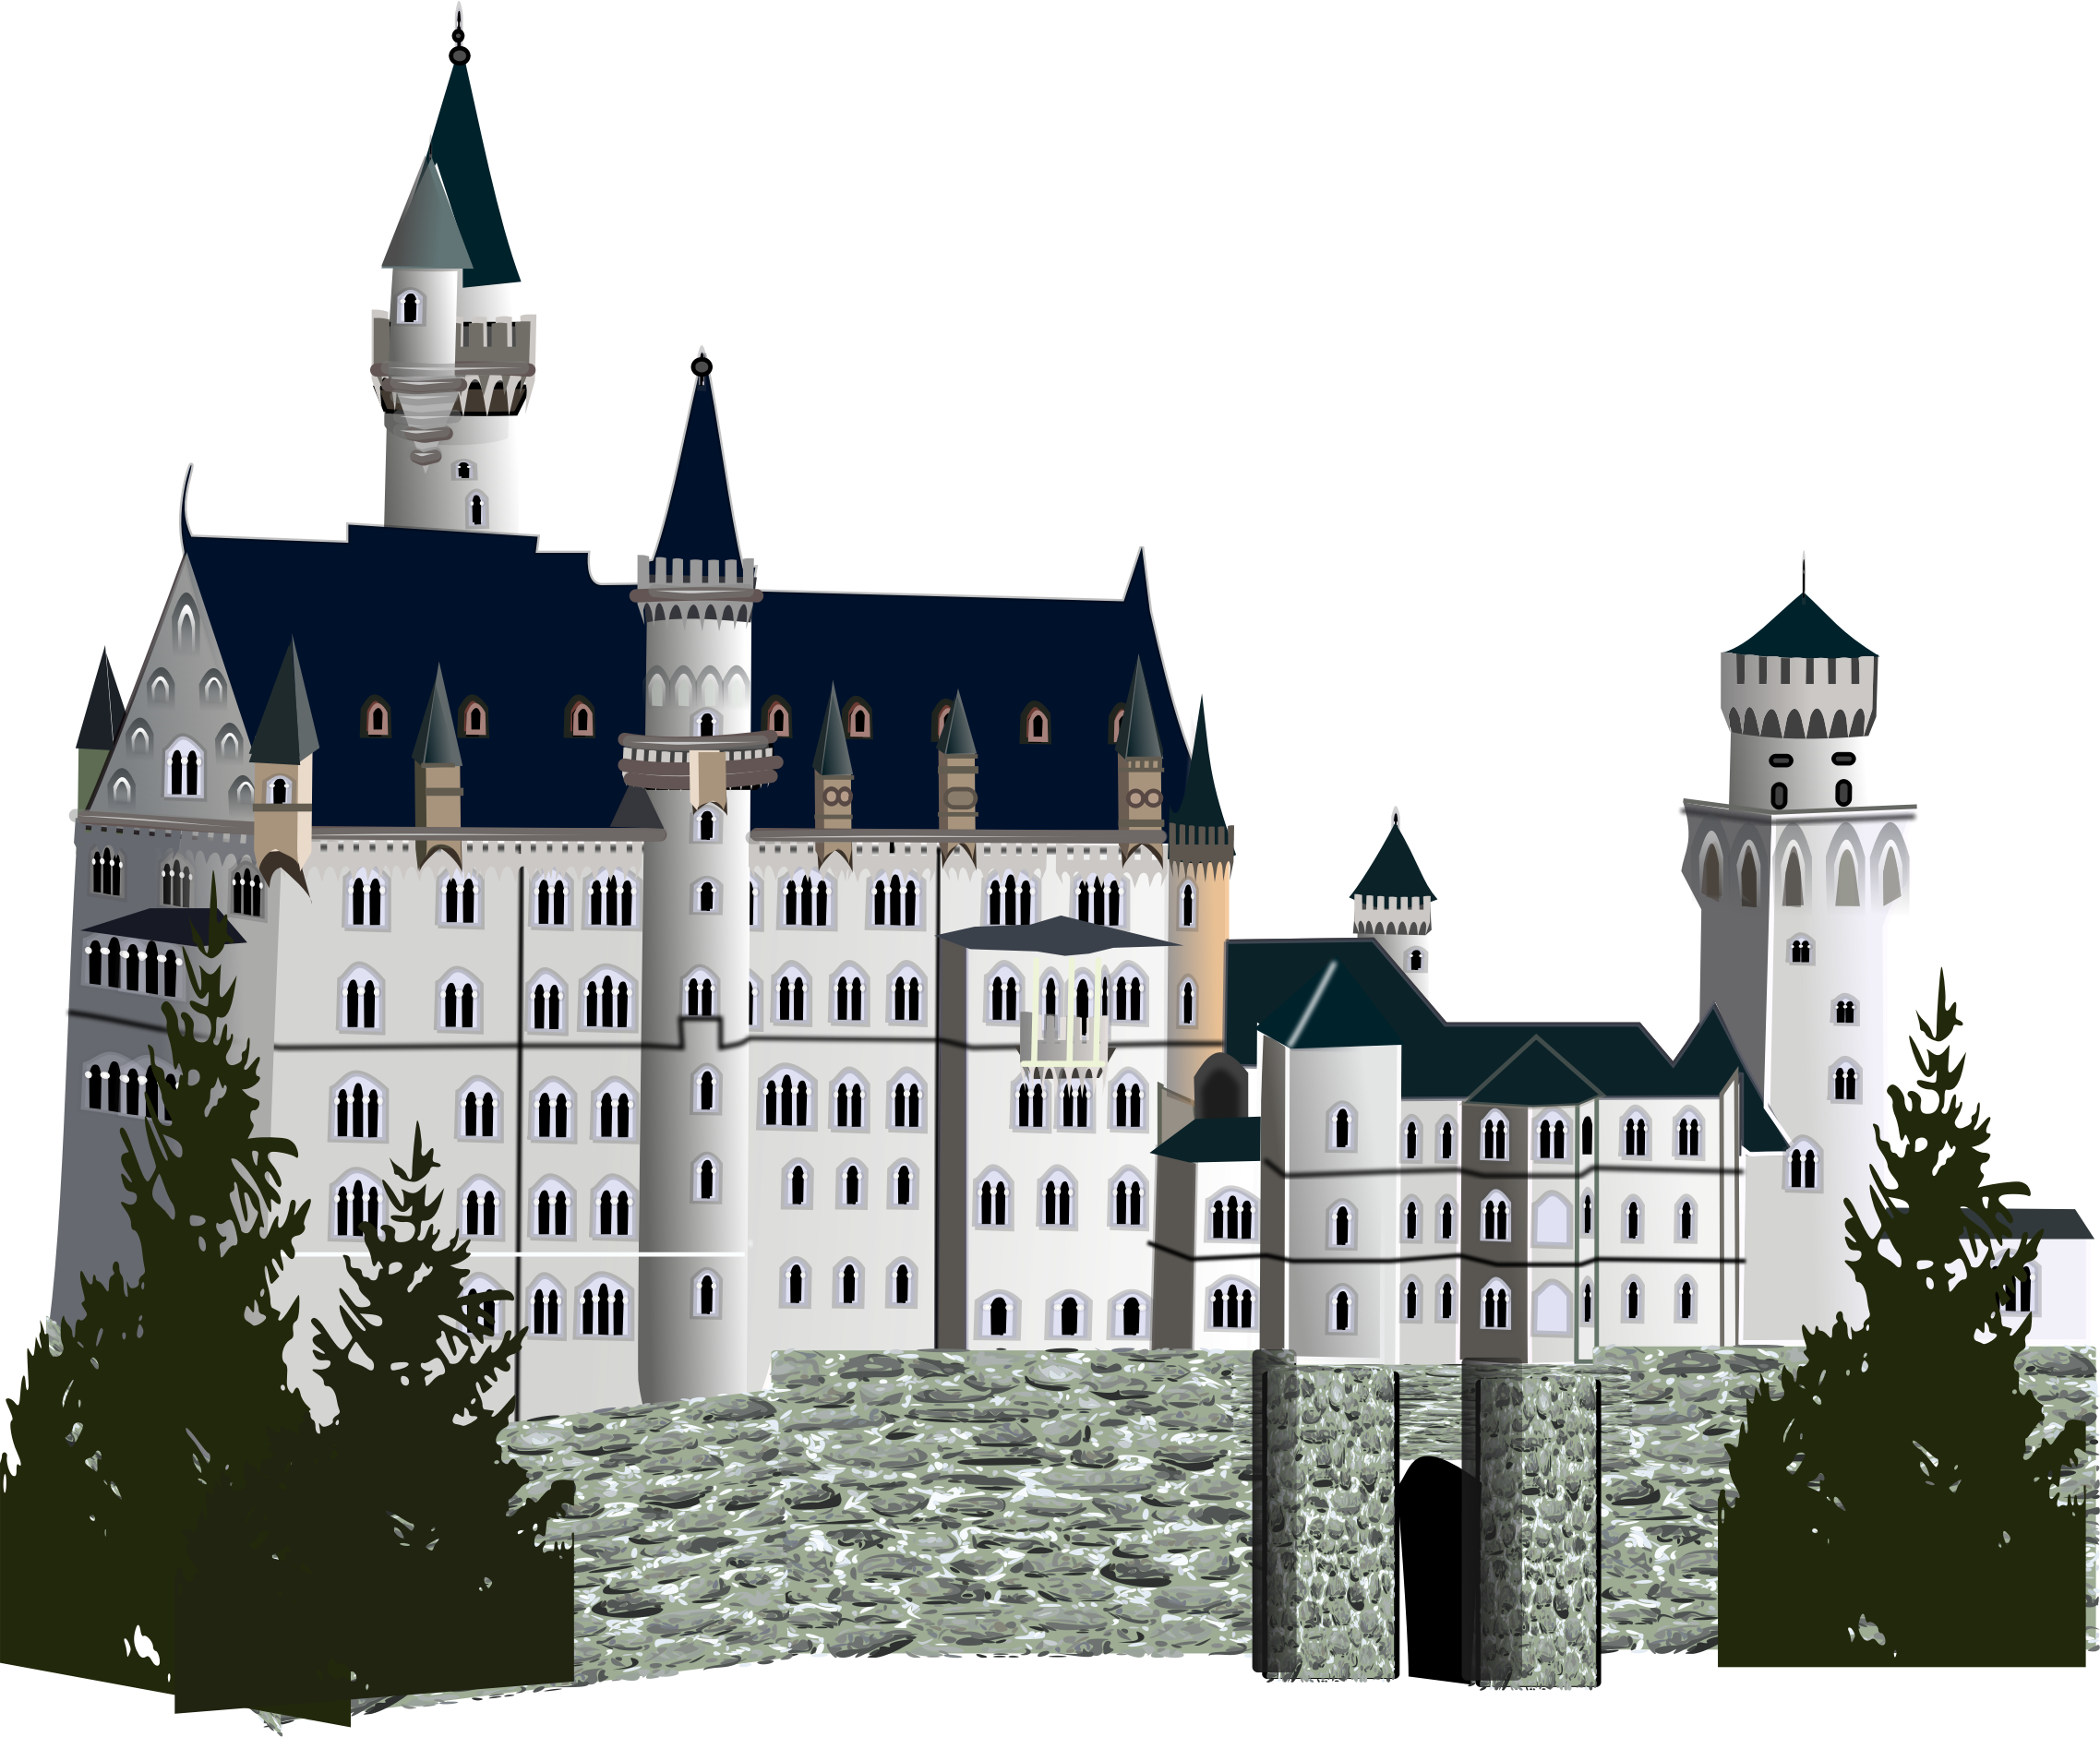 medieval castle, detailed version by gurica